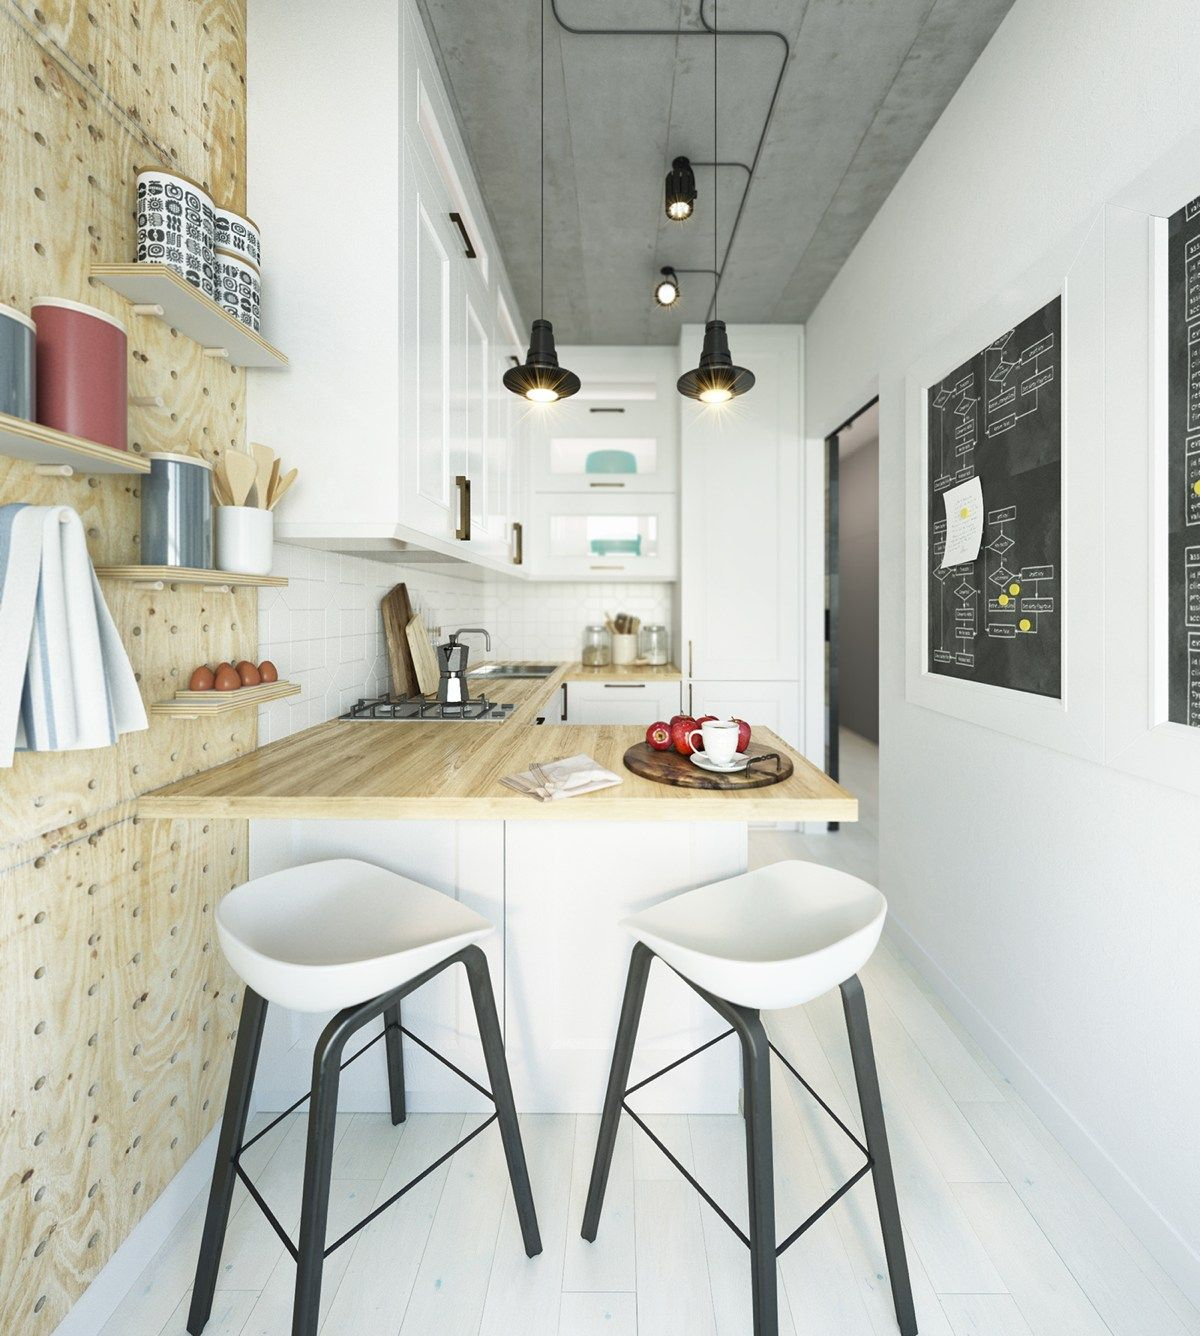 Living Room And Kitchen Stage By Synergy Staging: Two Takes On The Same Super-Small Apartment